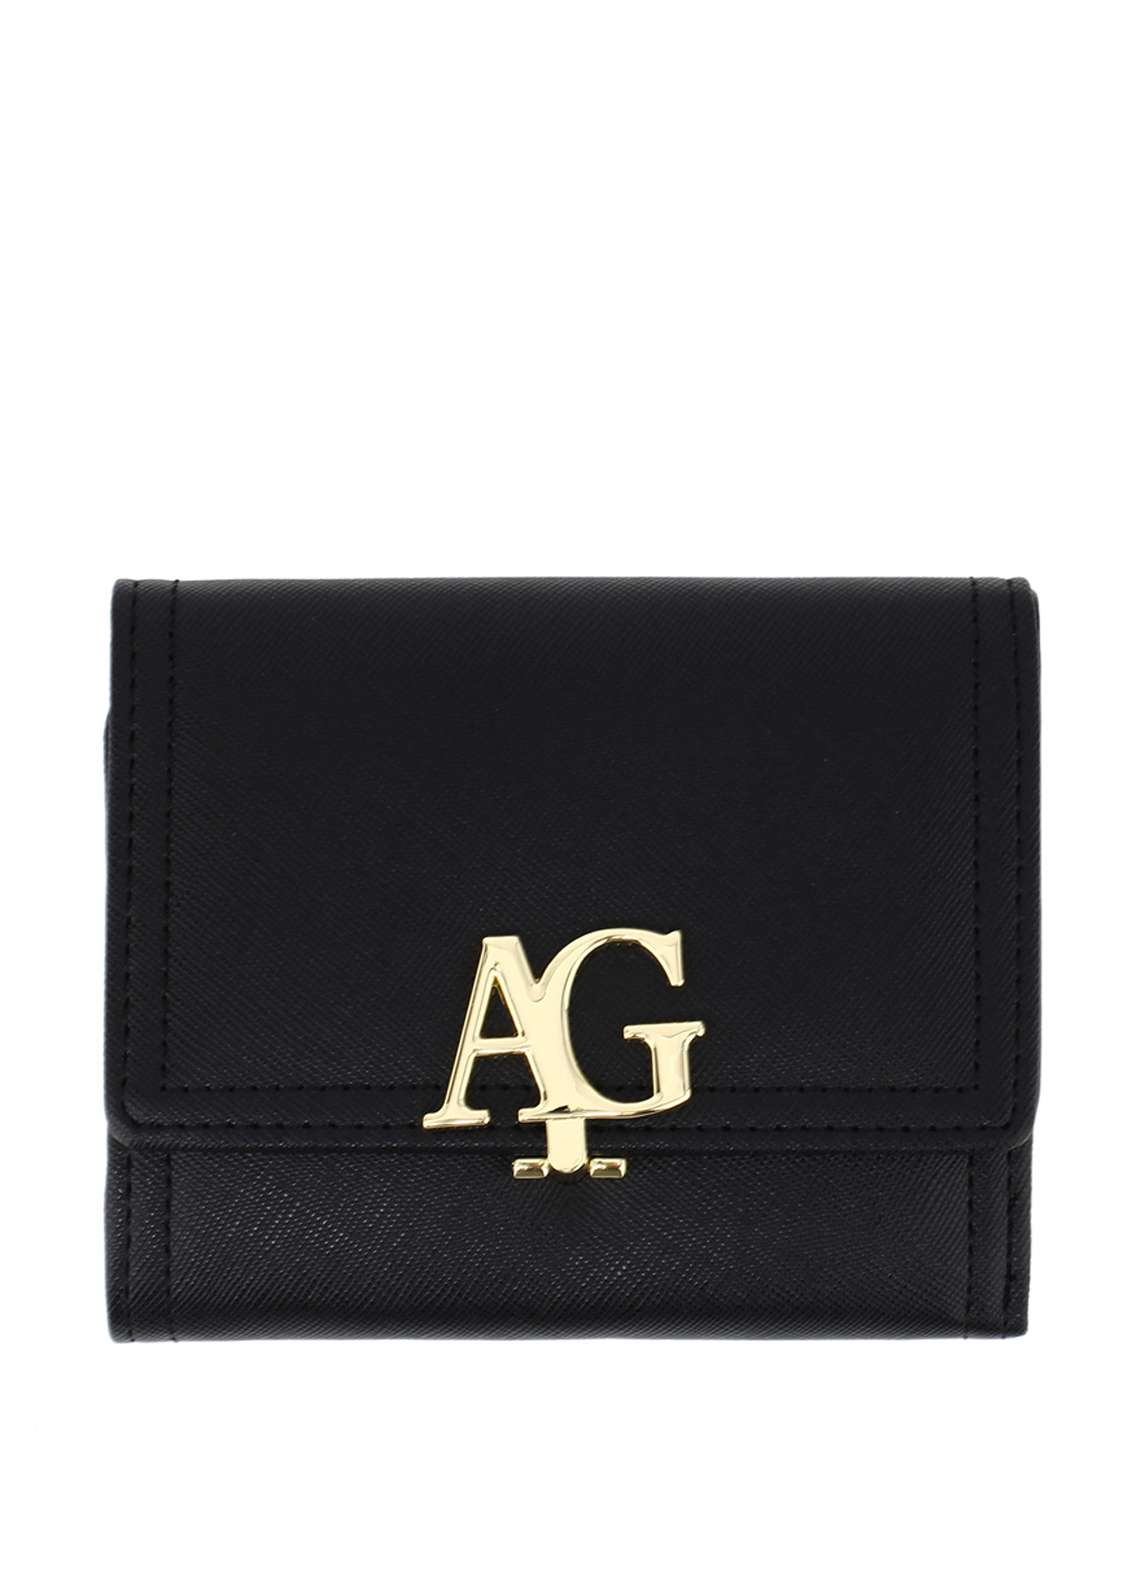 Anna Grace London Faux Leather Flap Purse Wallets  for Women  Black with Gold Metal Work